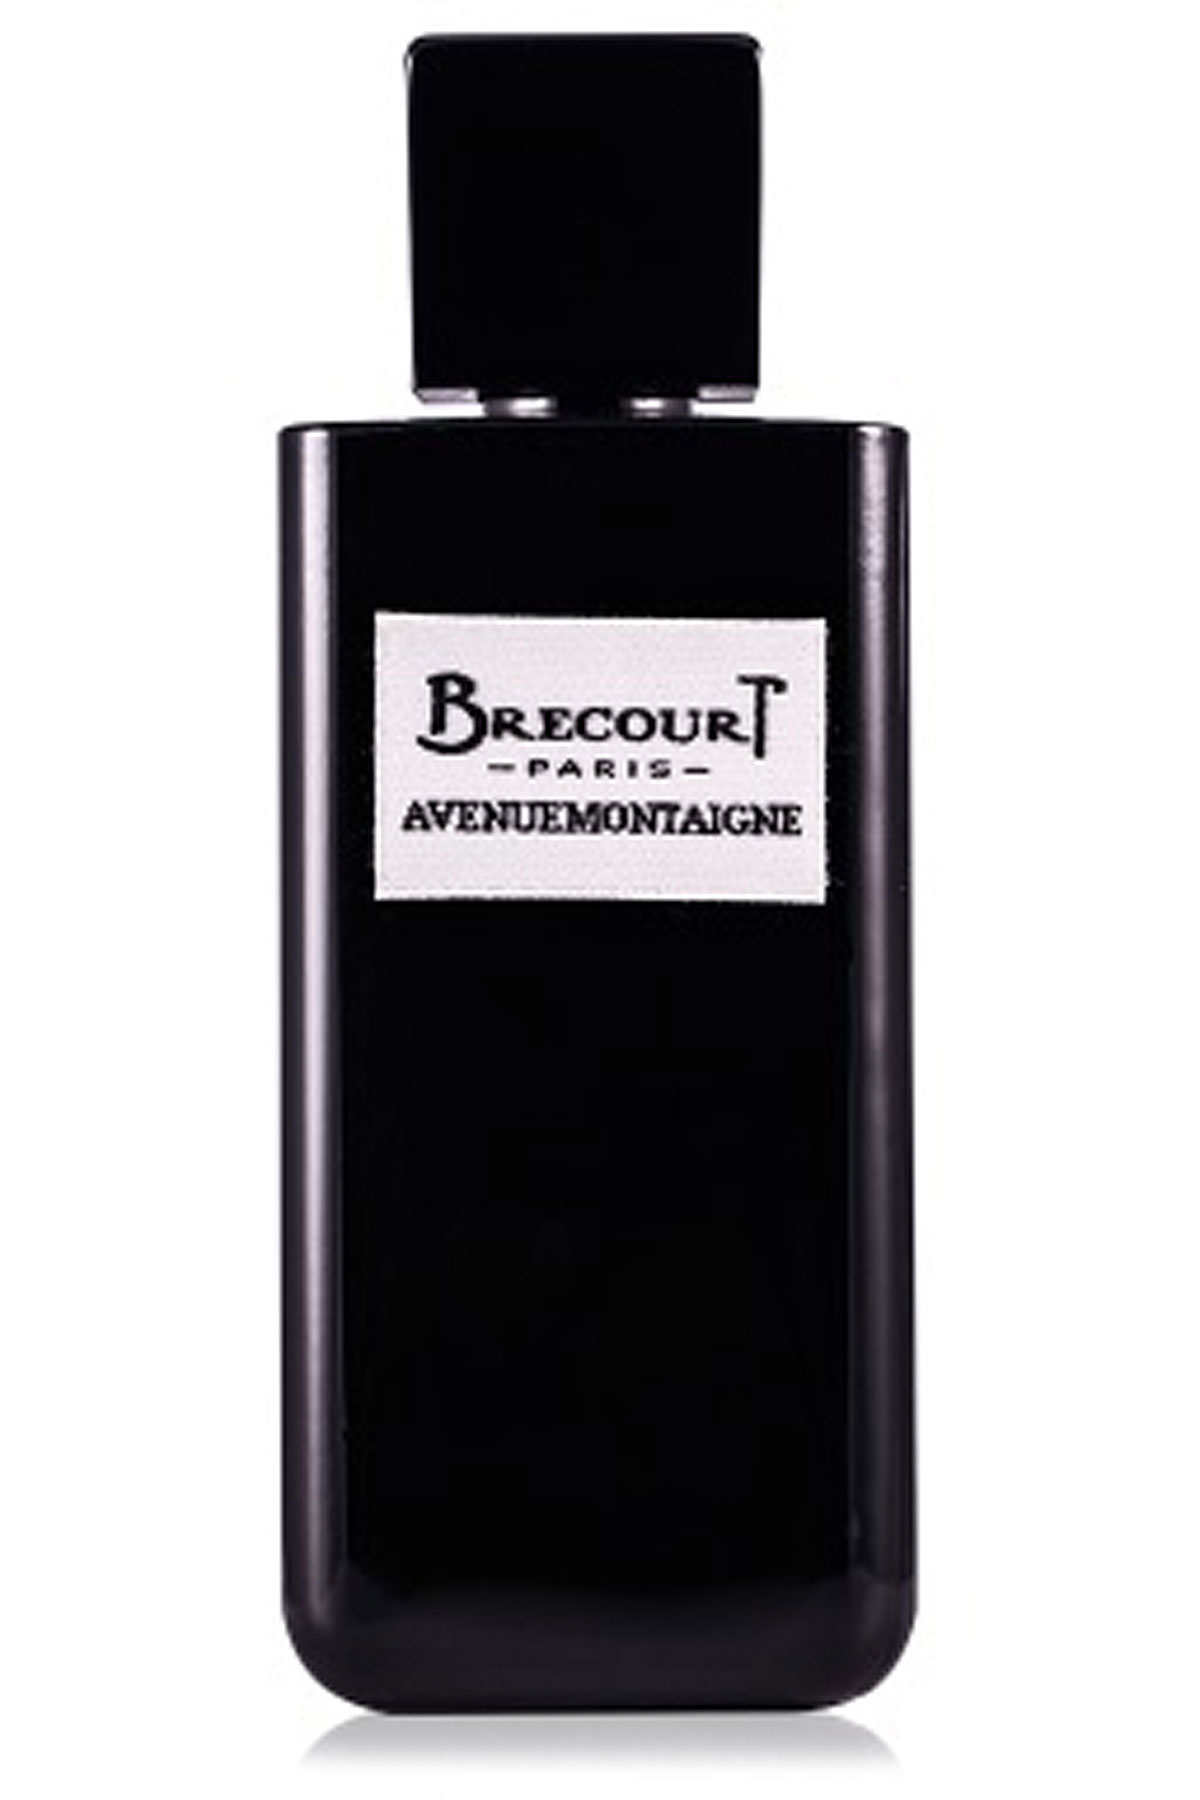 Brecourt Fragrances for Women, Avenue Montaigne - Eau De Parfum - 100 Ml, 2019, 100 ml